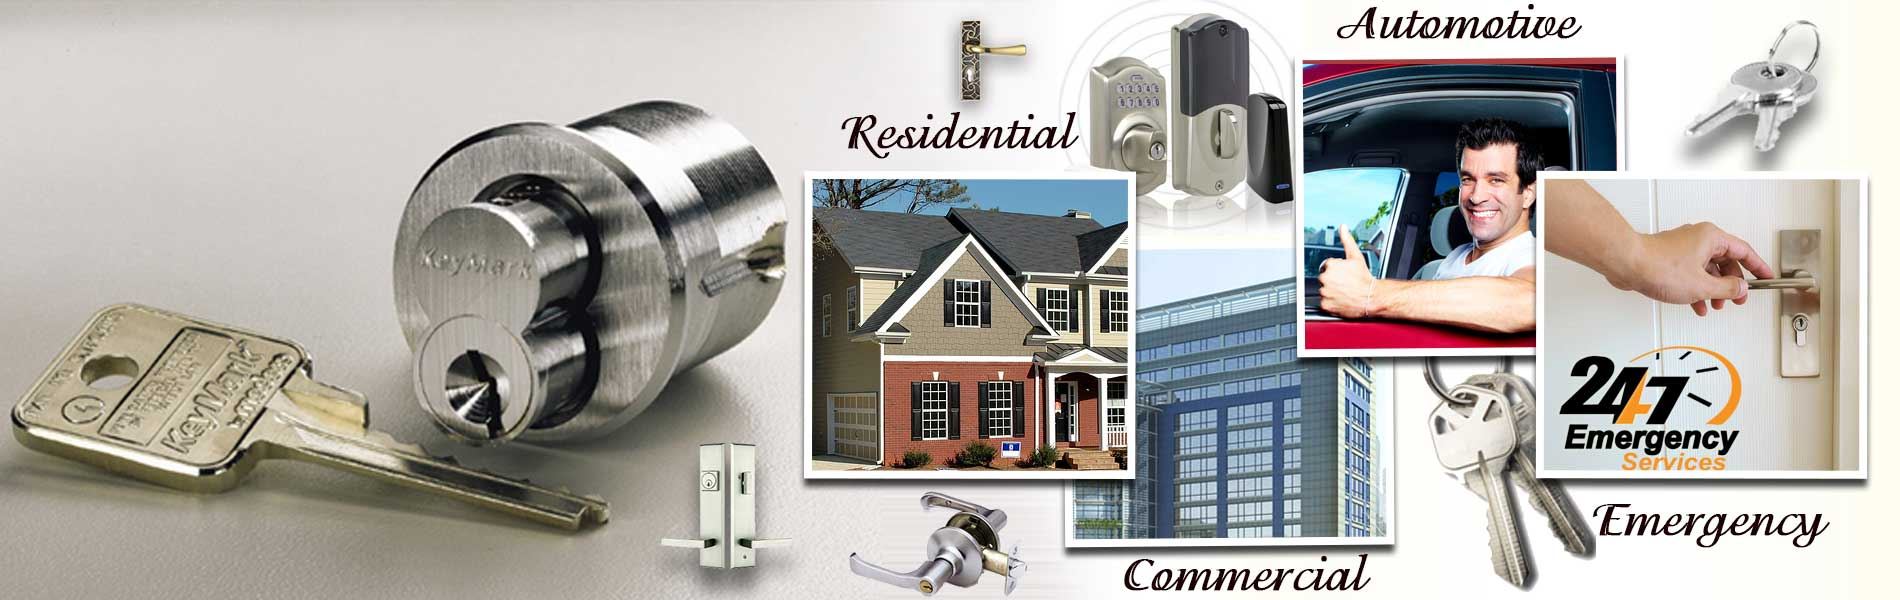 Town Center Locksmith Shop Gambrills, MD 410-412-7468